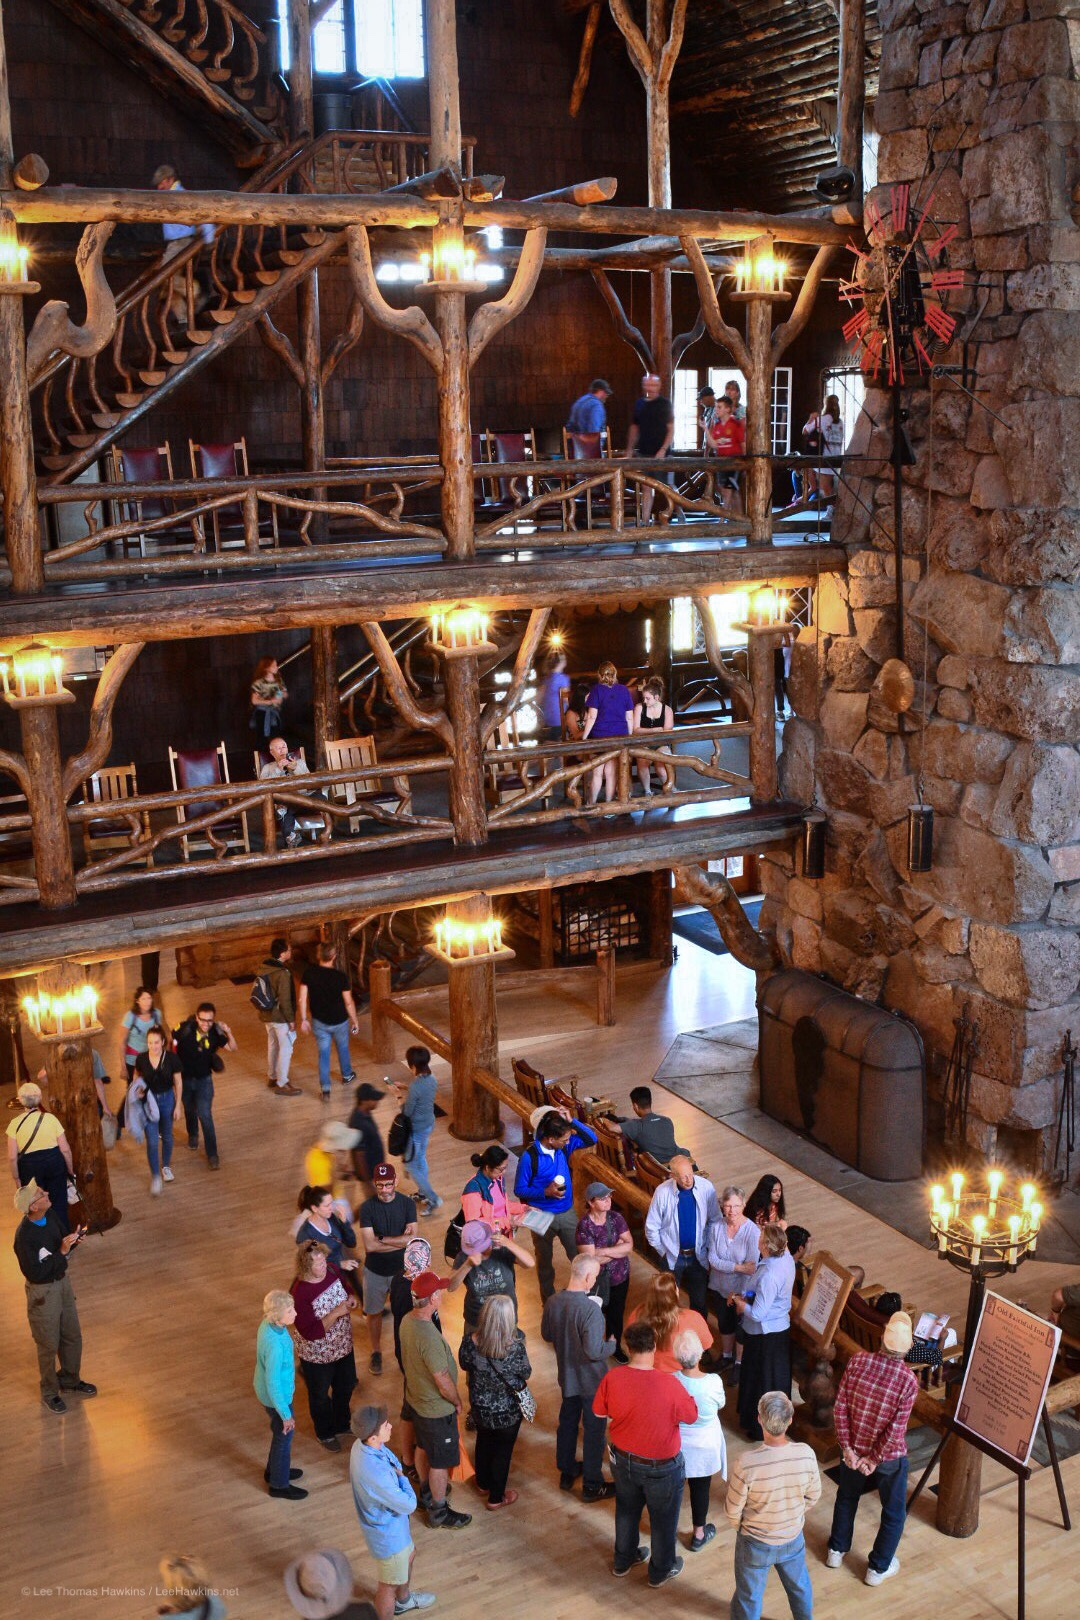 The rustic wood atrium of a hotel lobby with grand staircases rises multiple levels around a stone chimney surrounded by people.